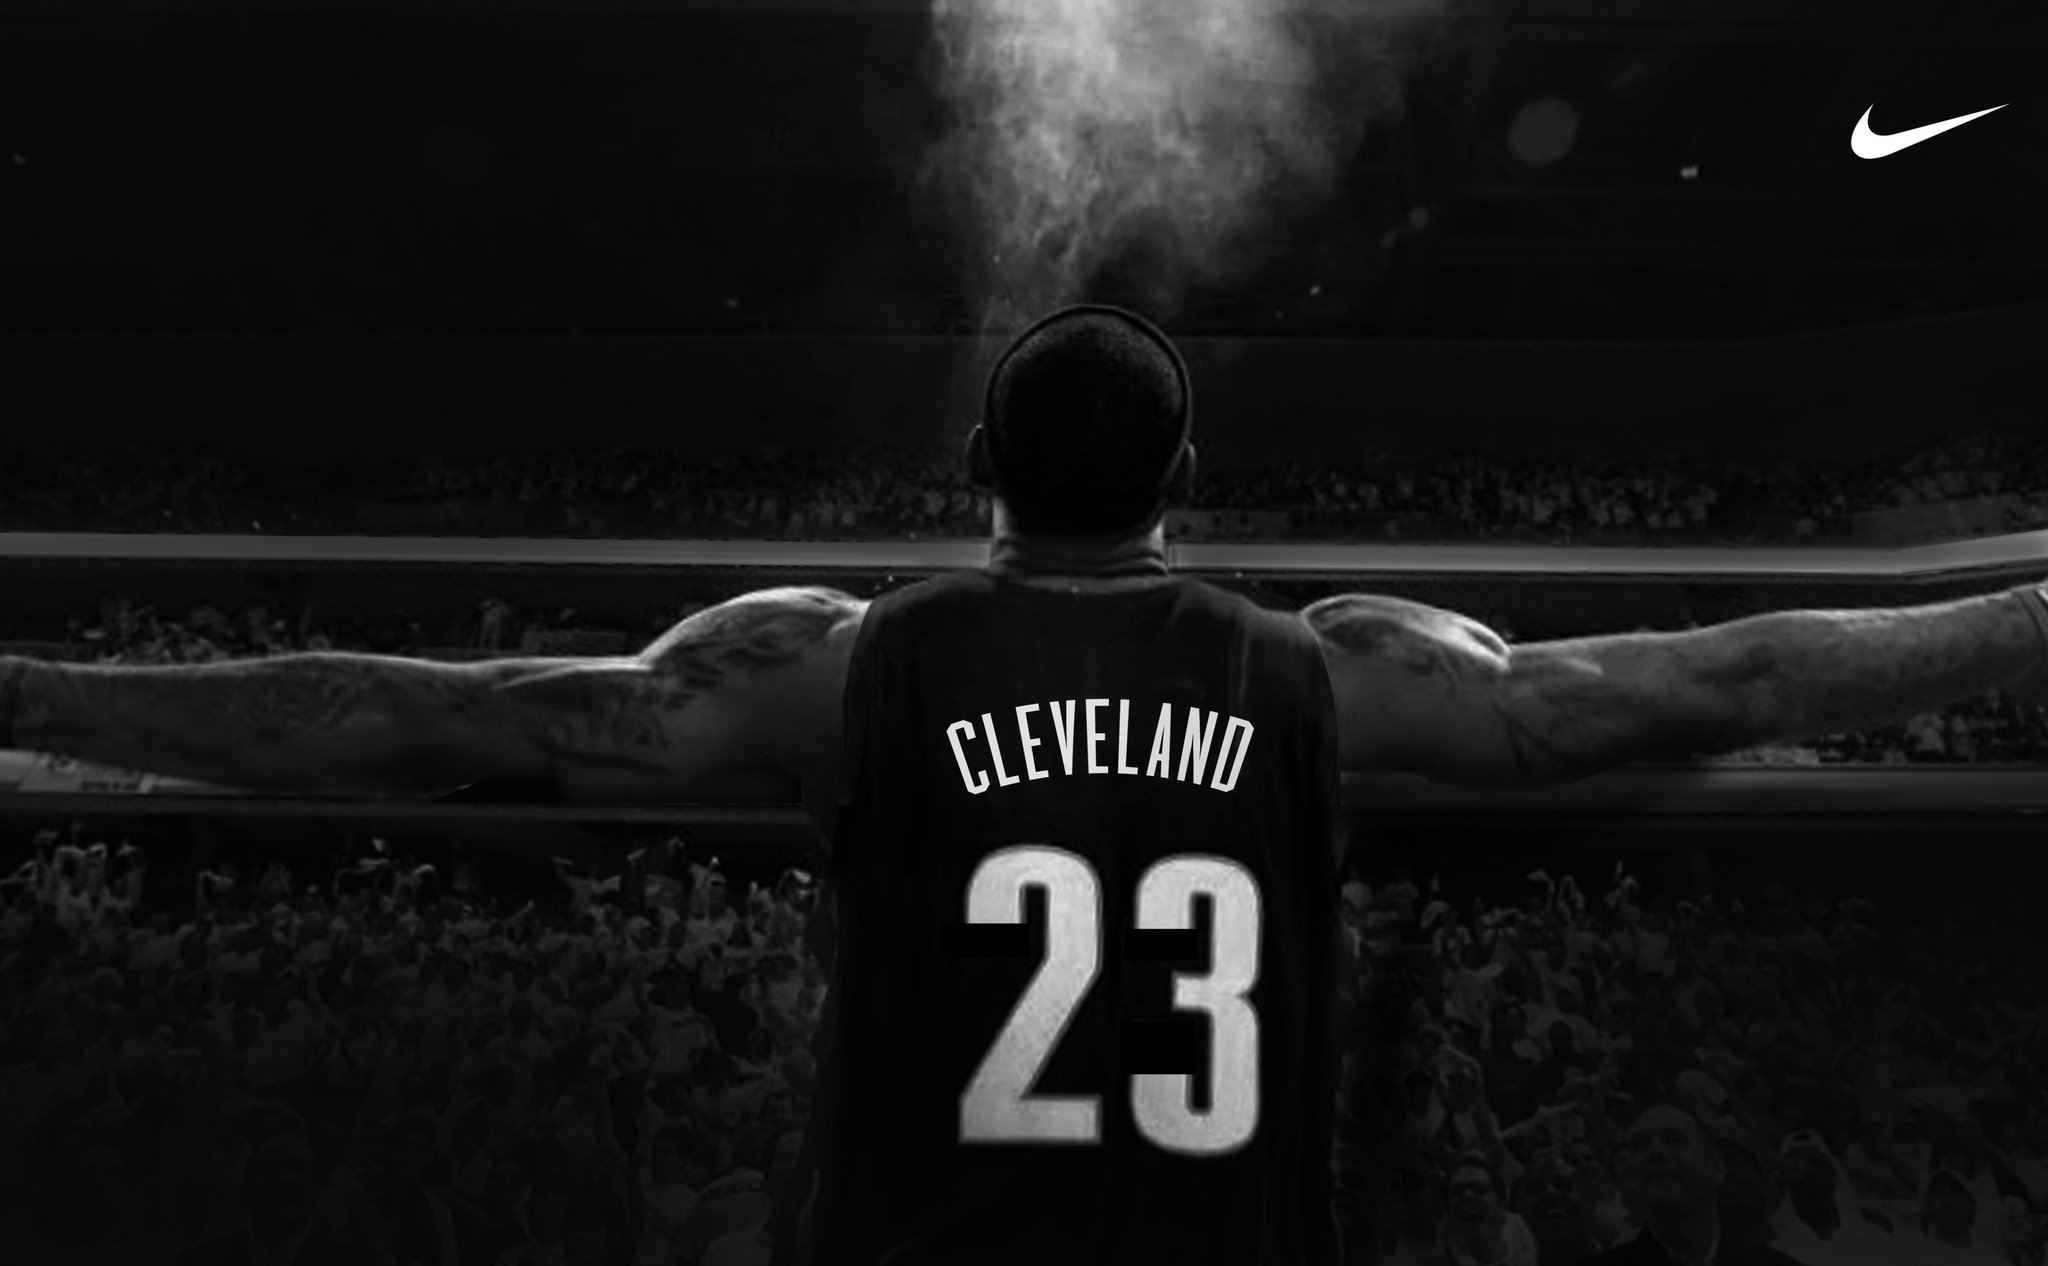 new product ac9d3 99da7 PHOTO Check out Nikes new LeBron James banner in Cleveland